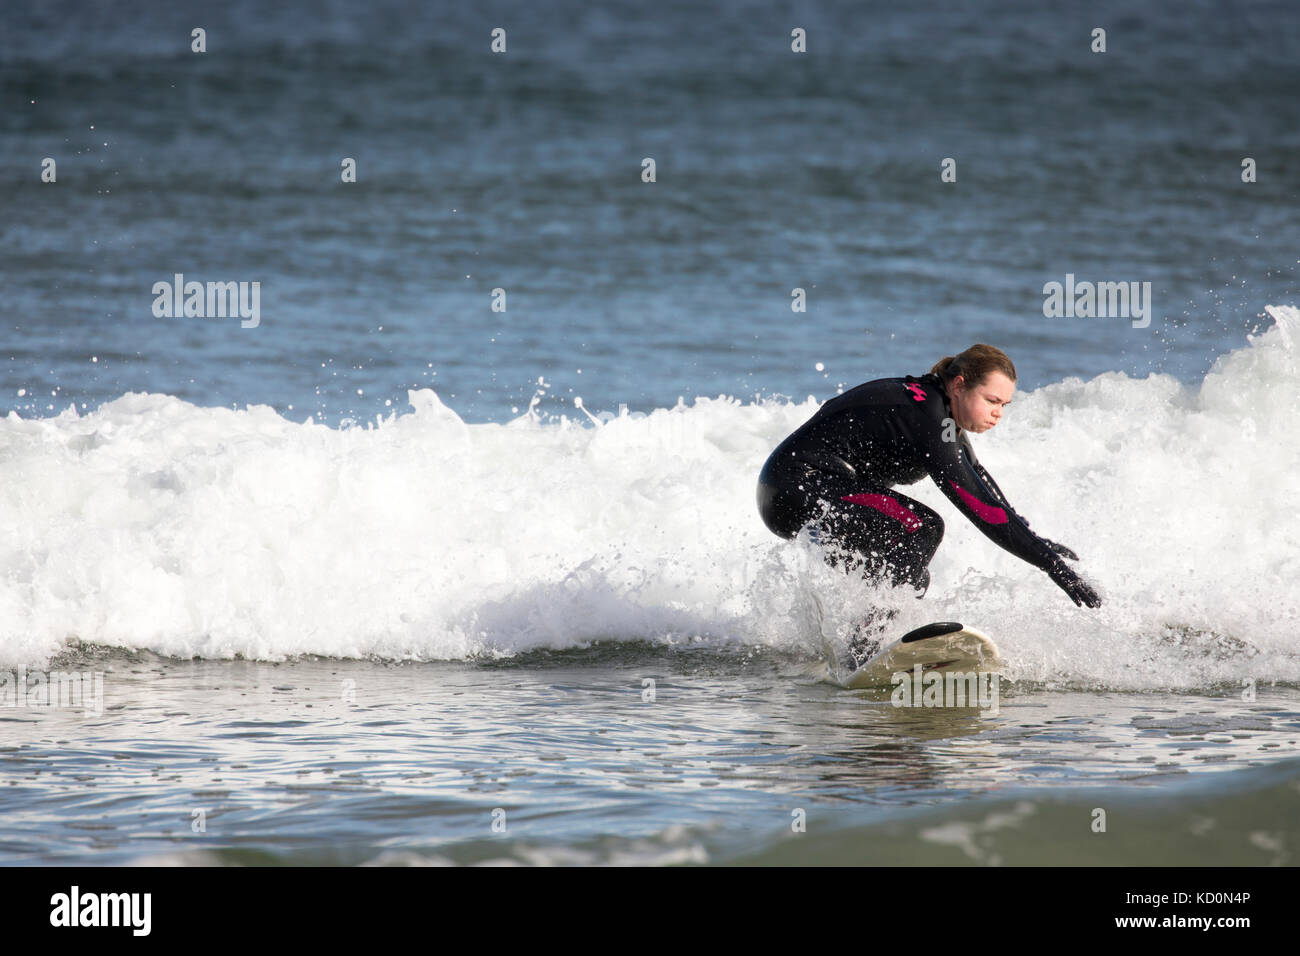 Female surfer riding a wave in the cold waters of